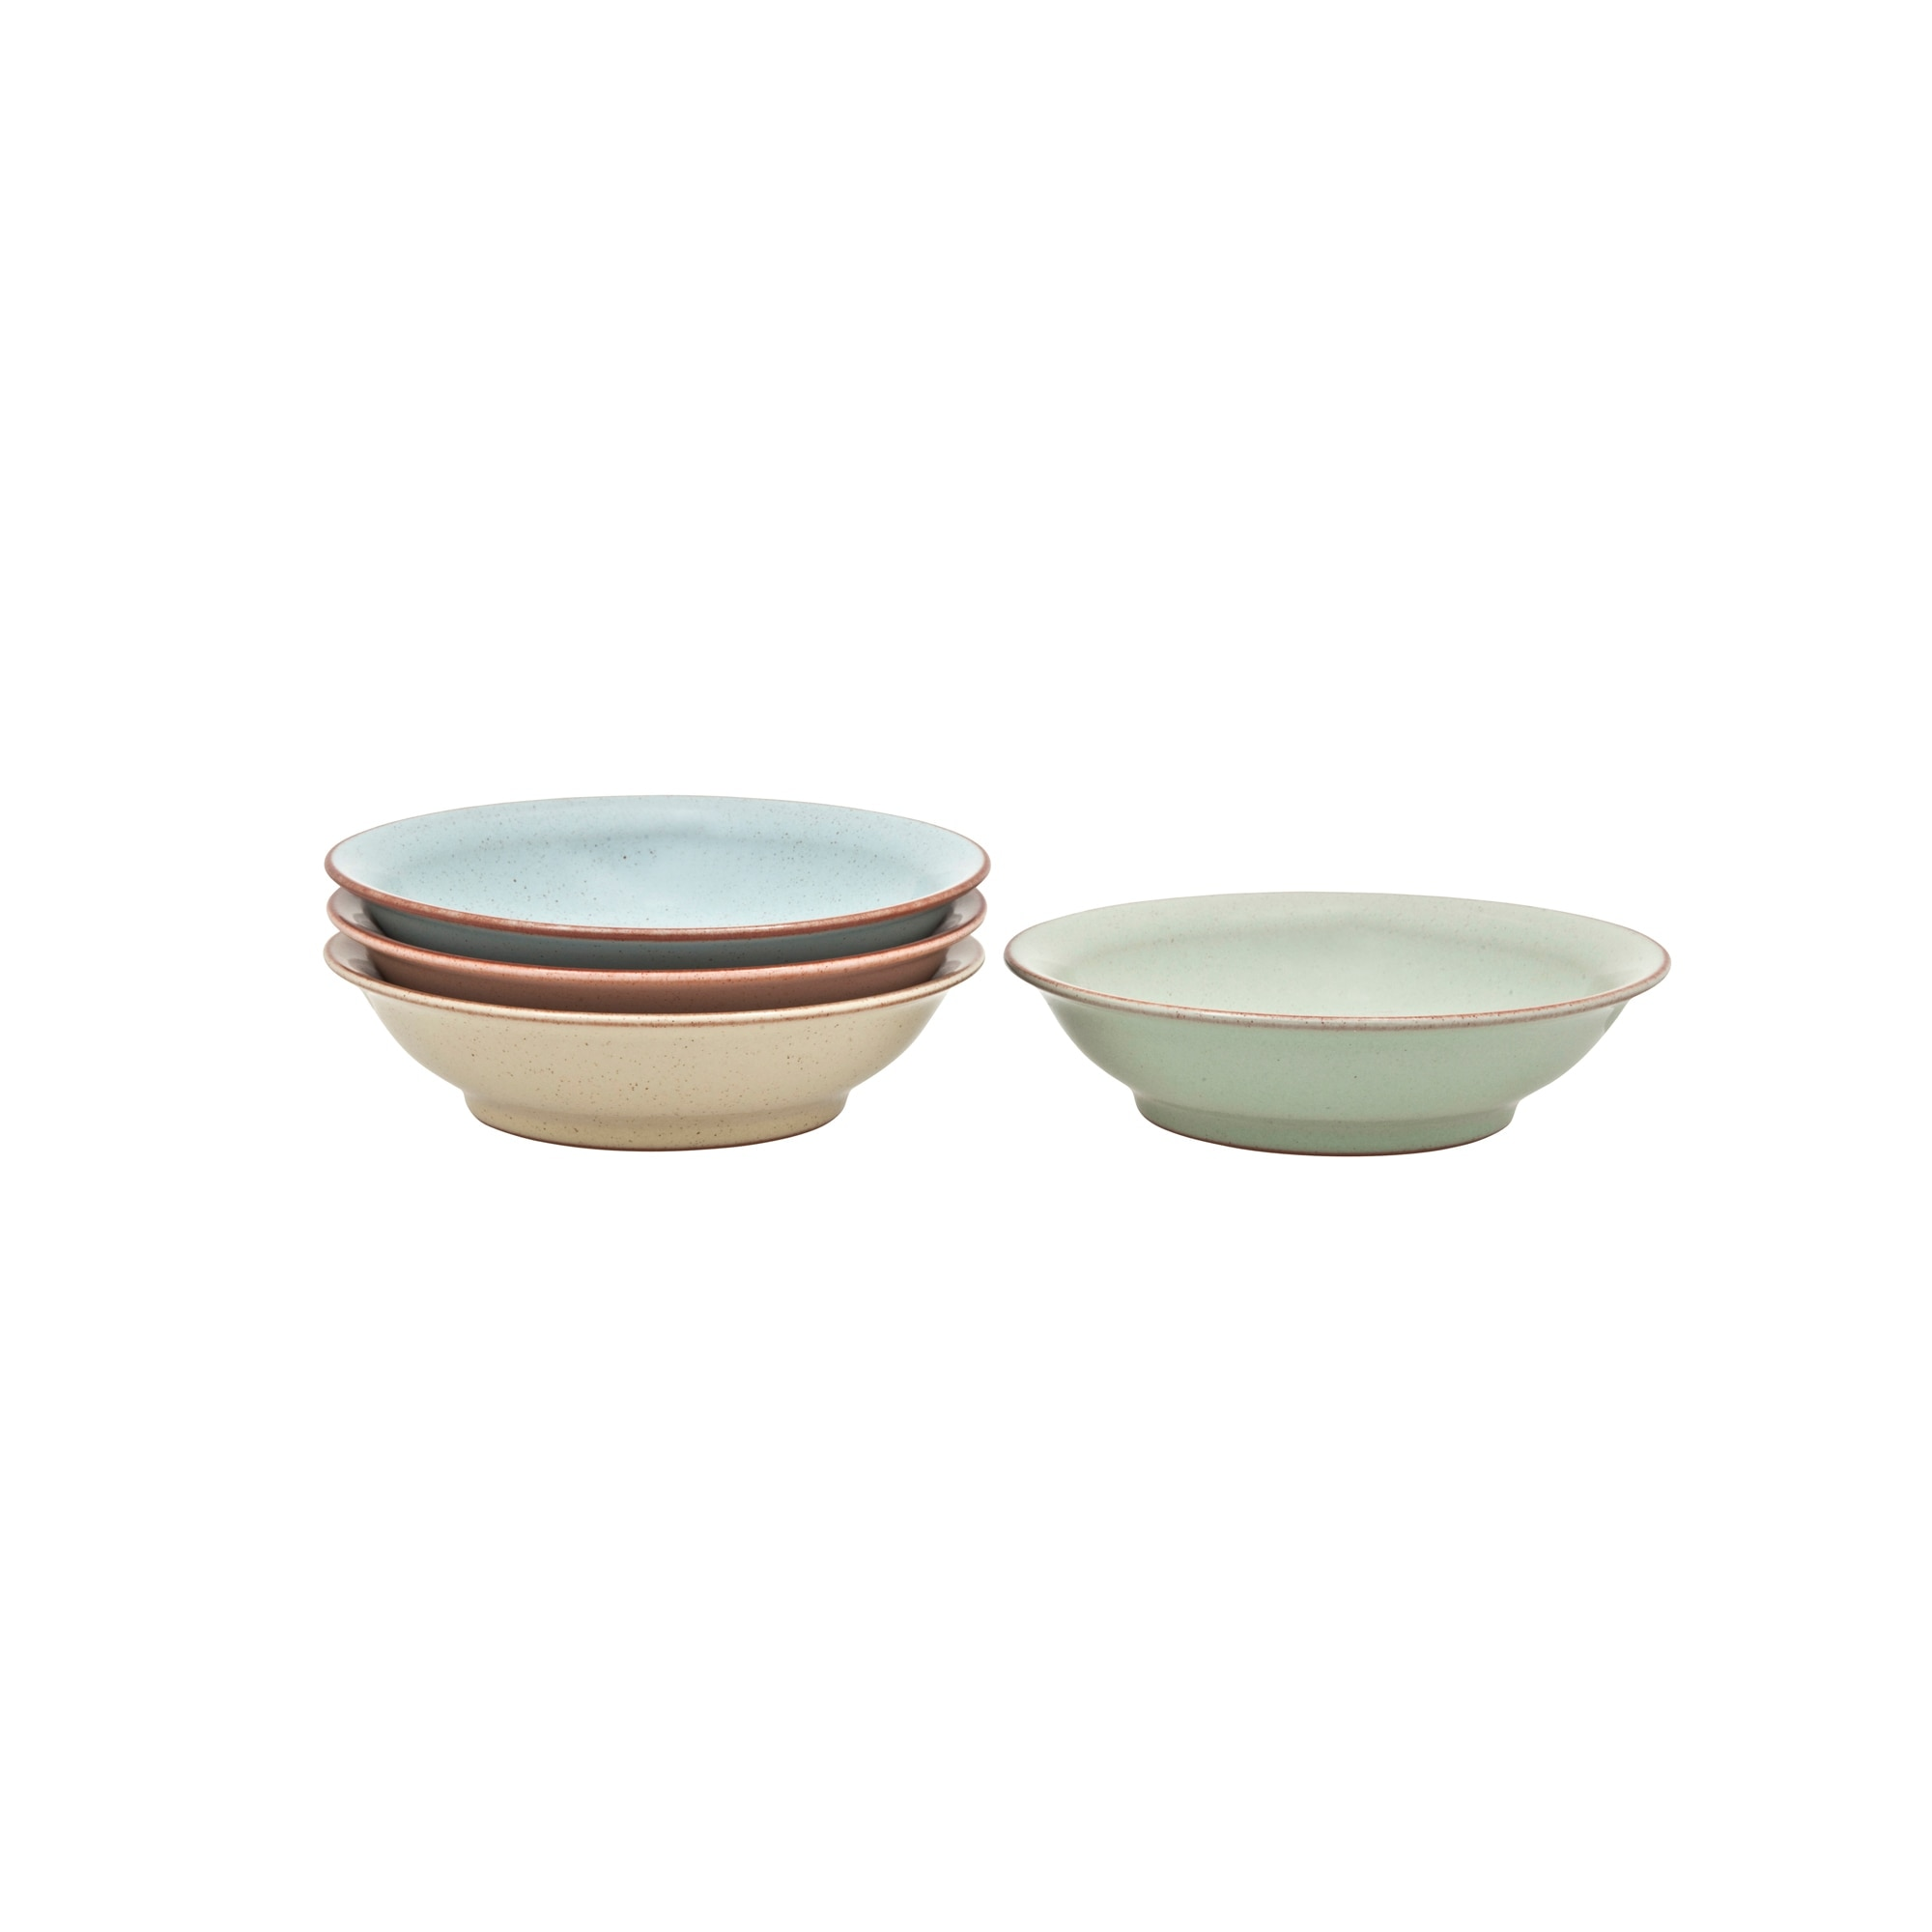 Compare prices for Denby Always Entertaining Deli 4 Piece Medium Shallow Bowl Set